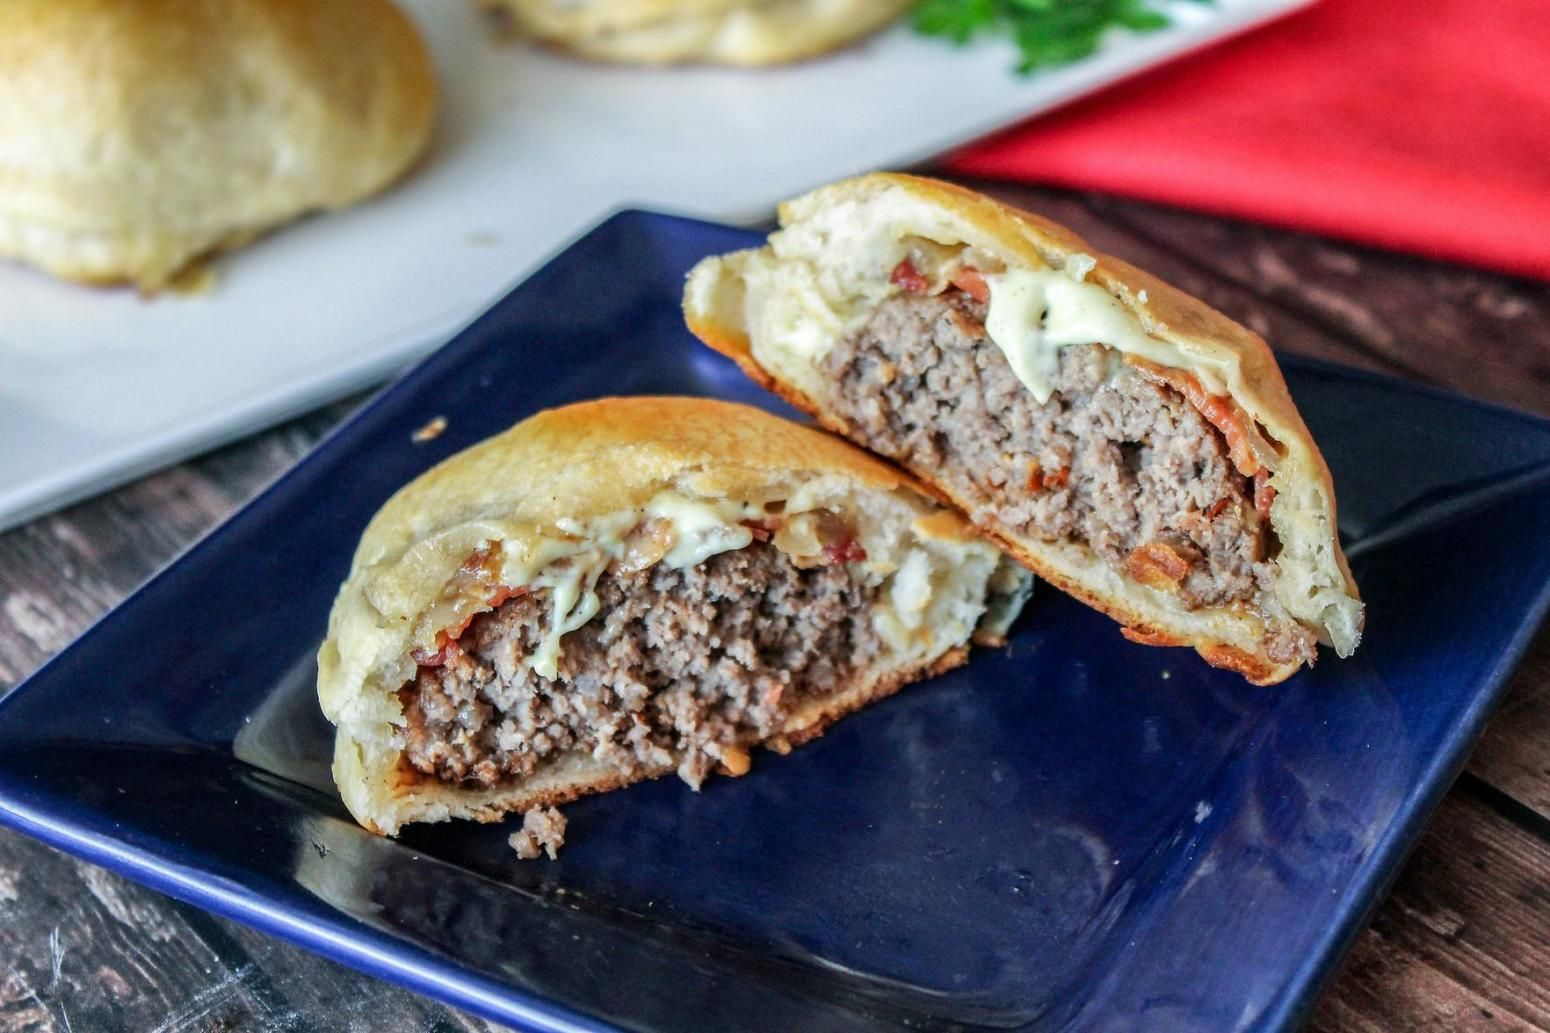 Flaky Grand Biscuits Molded Around Juicy Ground Beef And Cheese And Tender Onion And Garlic For An Extra Zip For Your Taste Buds Recipes Food Cooking Recipes